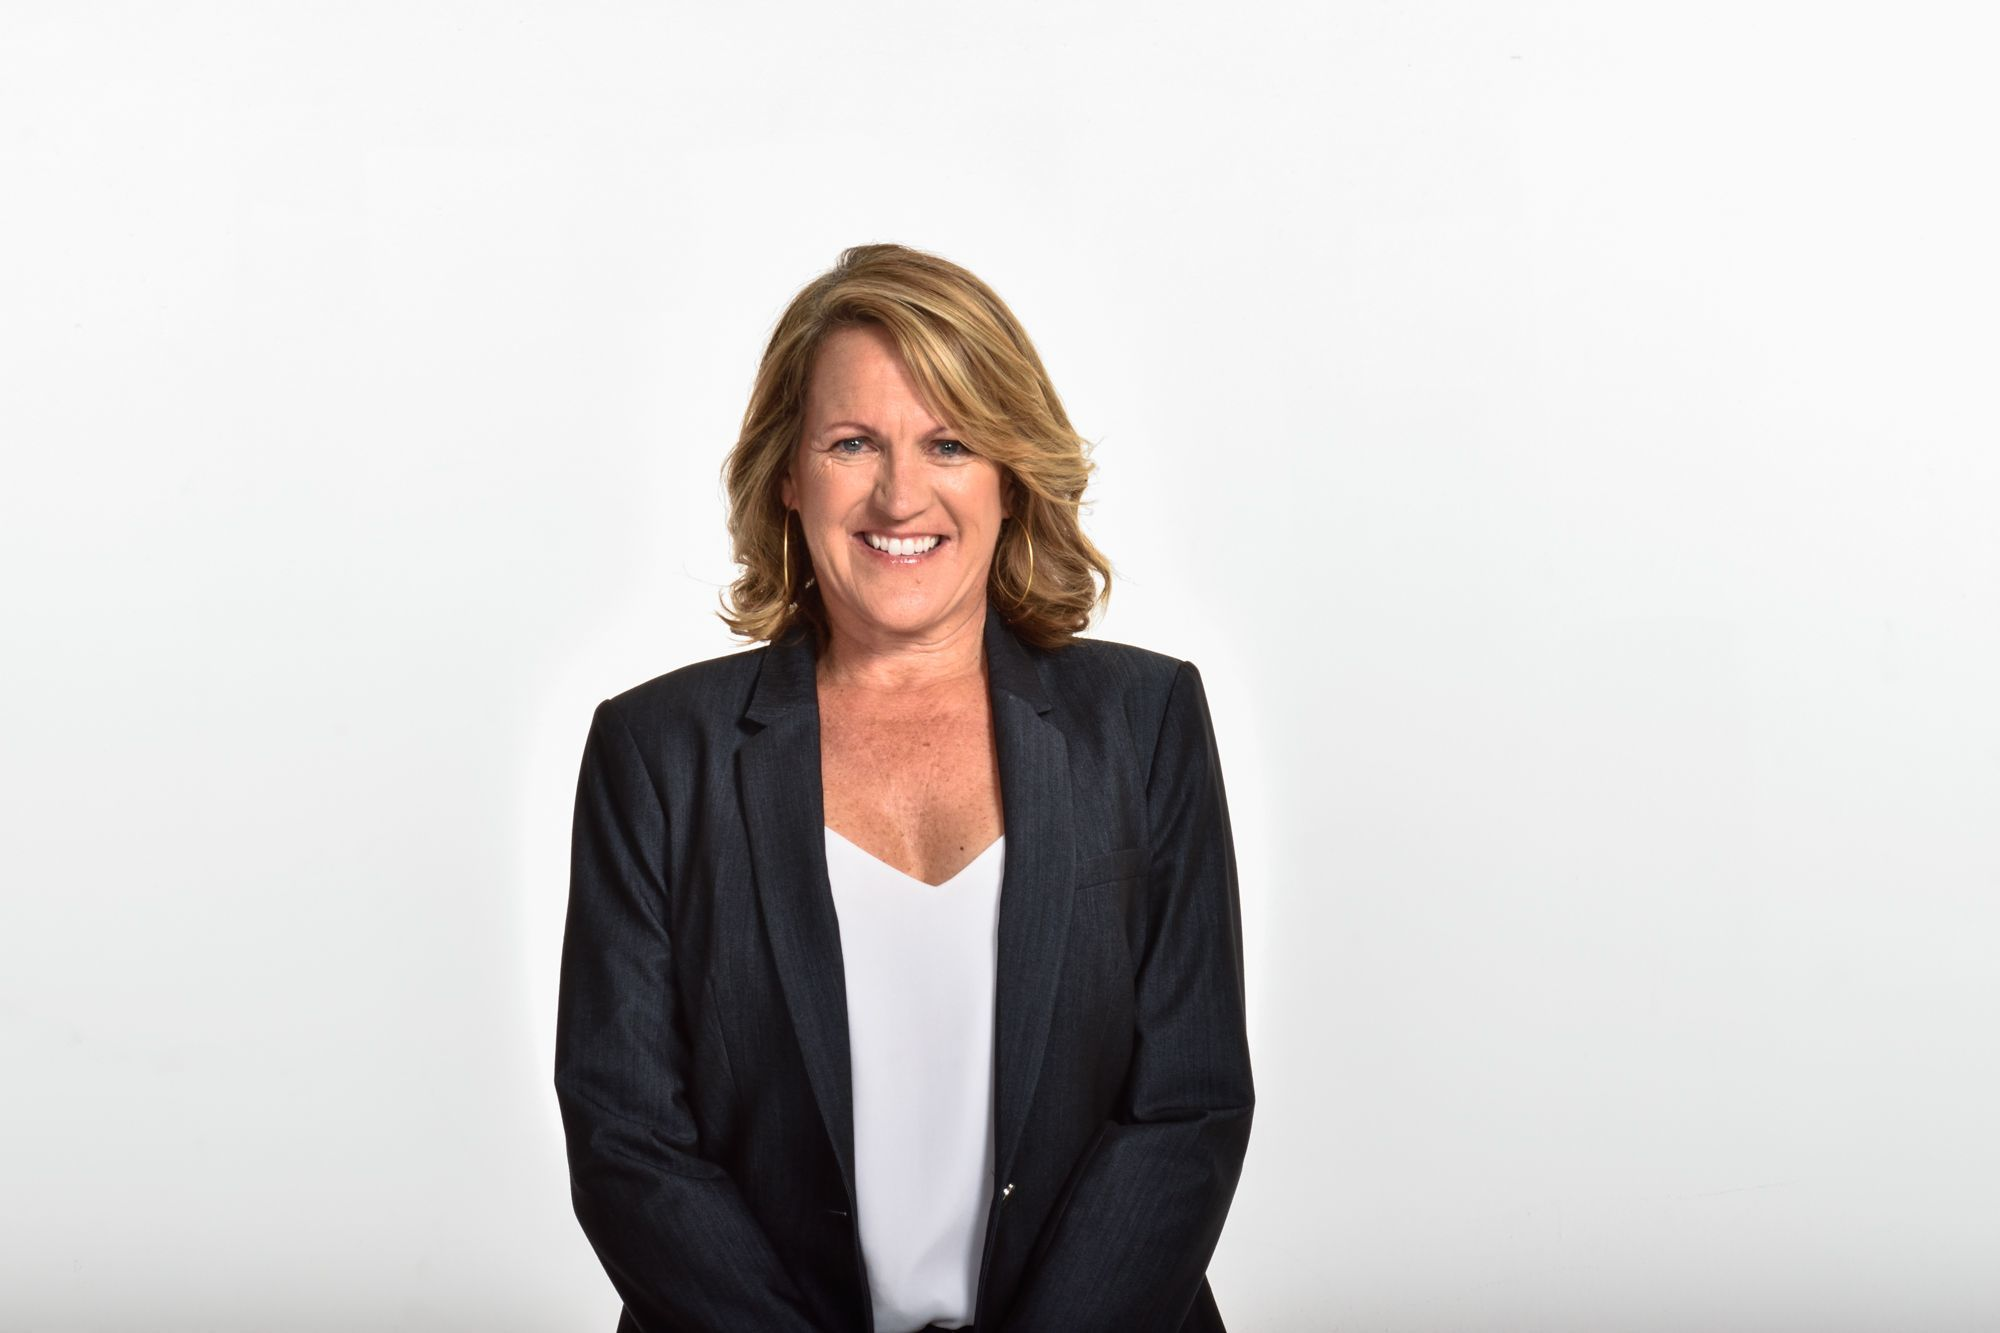 Meet CSF's new President & CEO Michelle Gilmore!